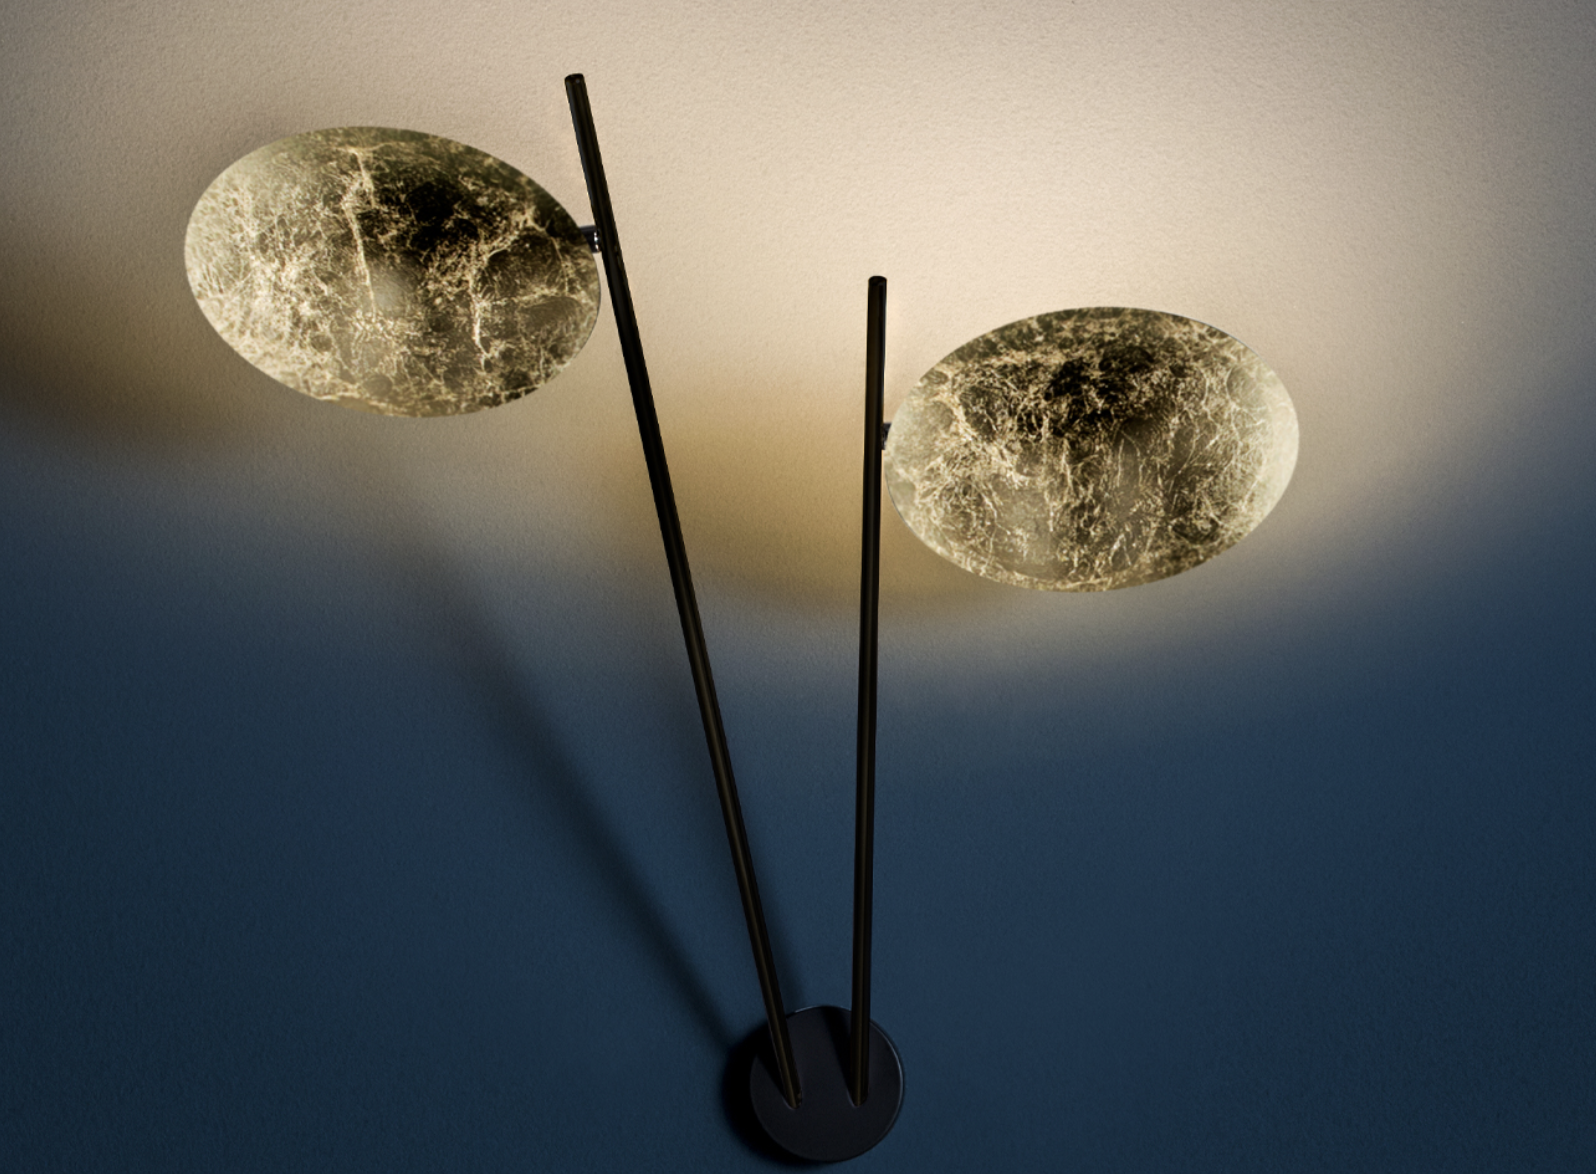 Lederam W2 Wall Lamp - My past and what I built so far are part of me, but Enzo Catellani was born today, with the desire to travelling backwards to rediscover the primal instinct of doing, for the pleasure of creating | Matter of Stuff